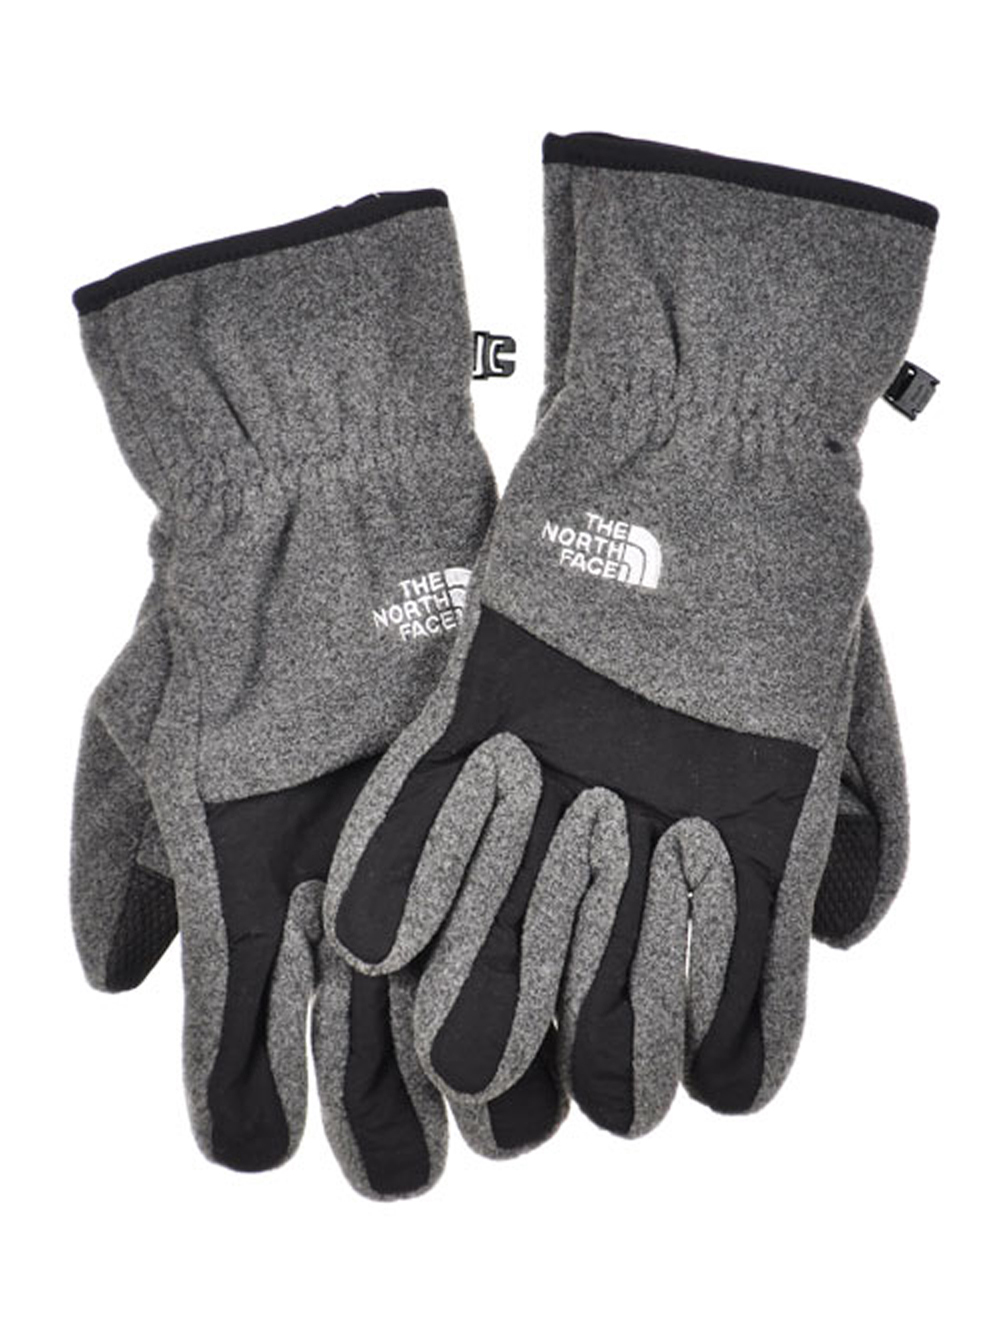 The North Face Men's Denali Glove (Sizes S - XL) - charcoal gray, m